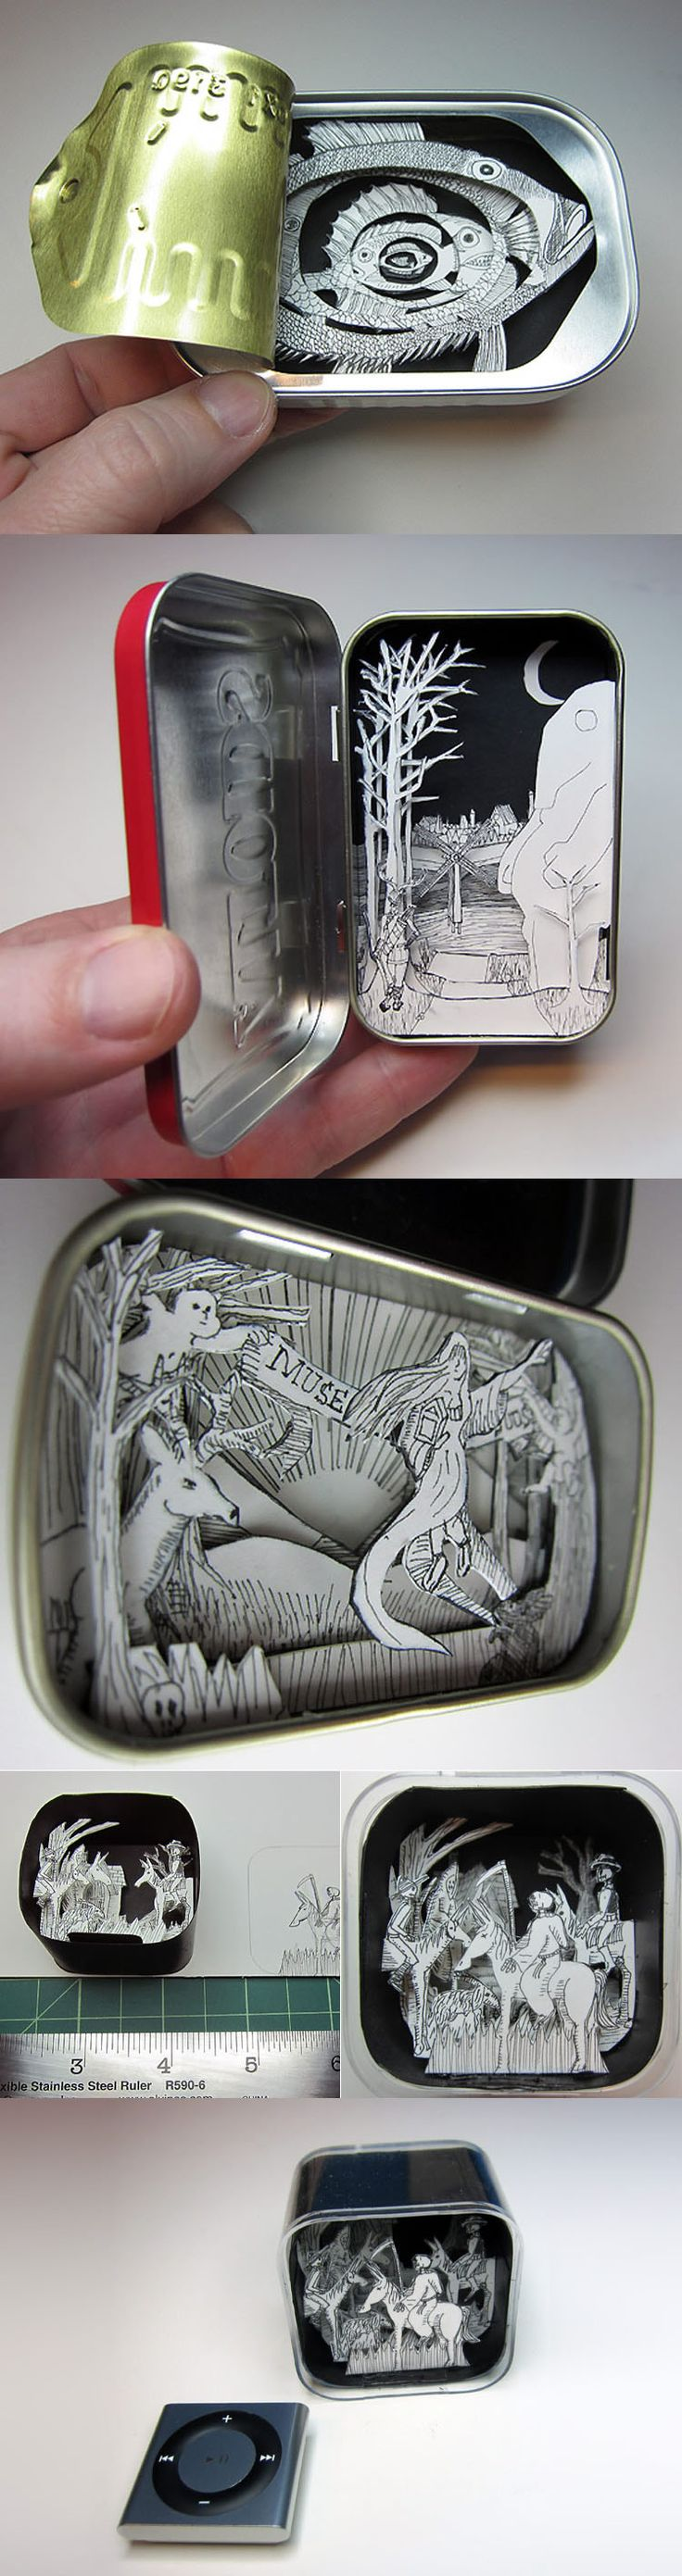 shadow box tins: future Sean crafts.  I already find these tins in every pocket he has, he might as well make little scenes for the inside.